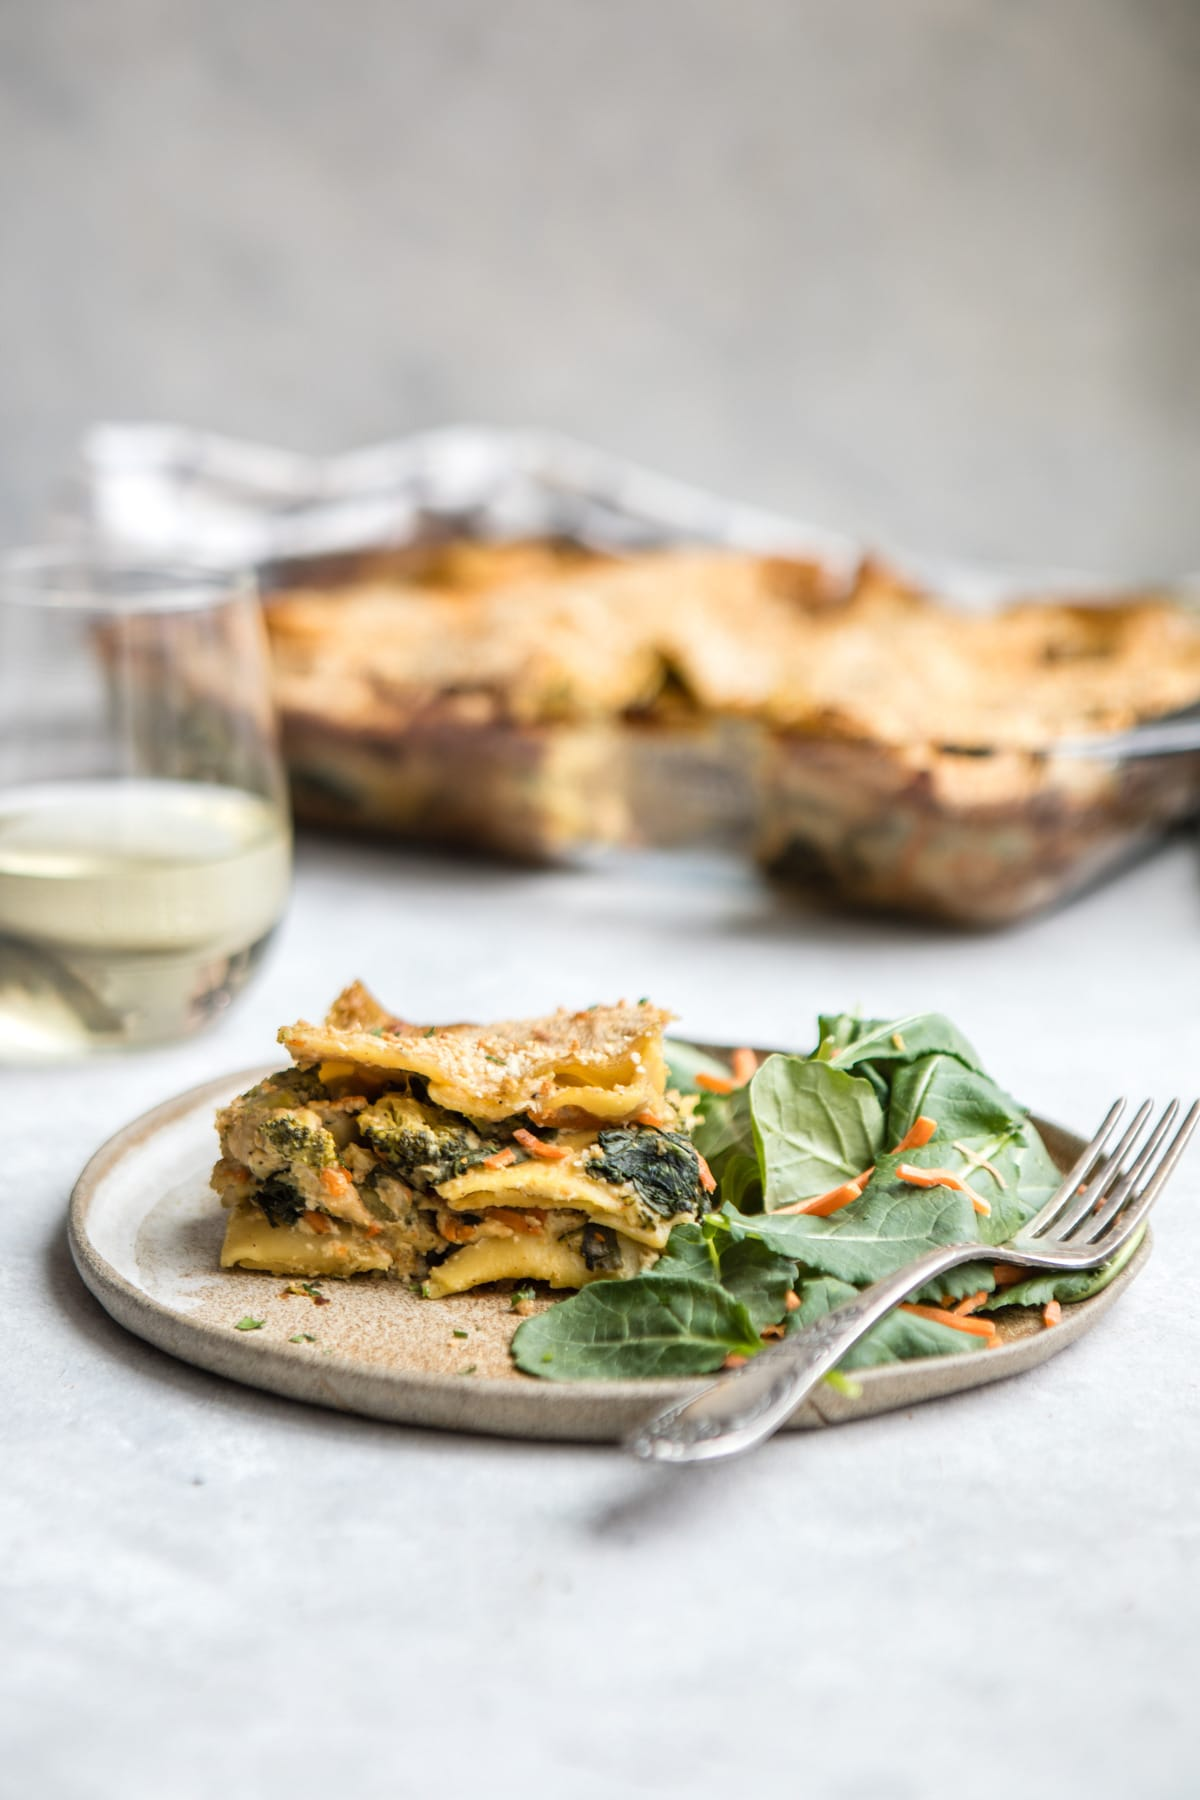 picece of lasagna on tan plate with salad on white background